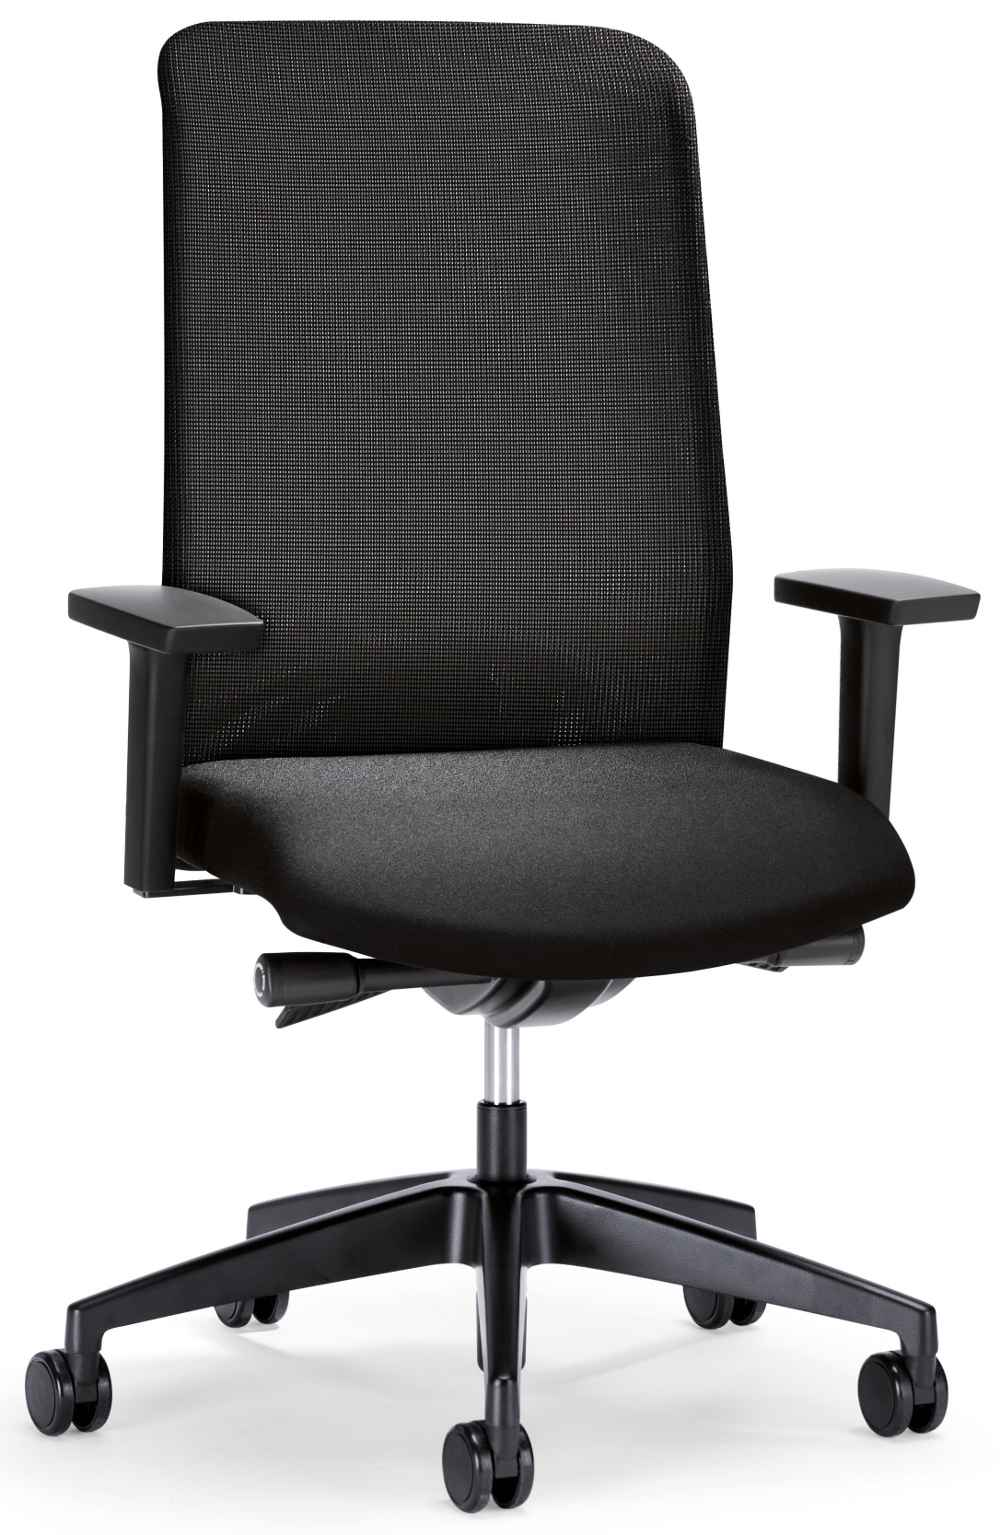 Black round desk chair with attractive design